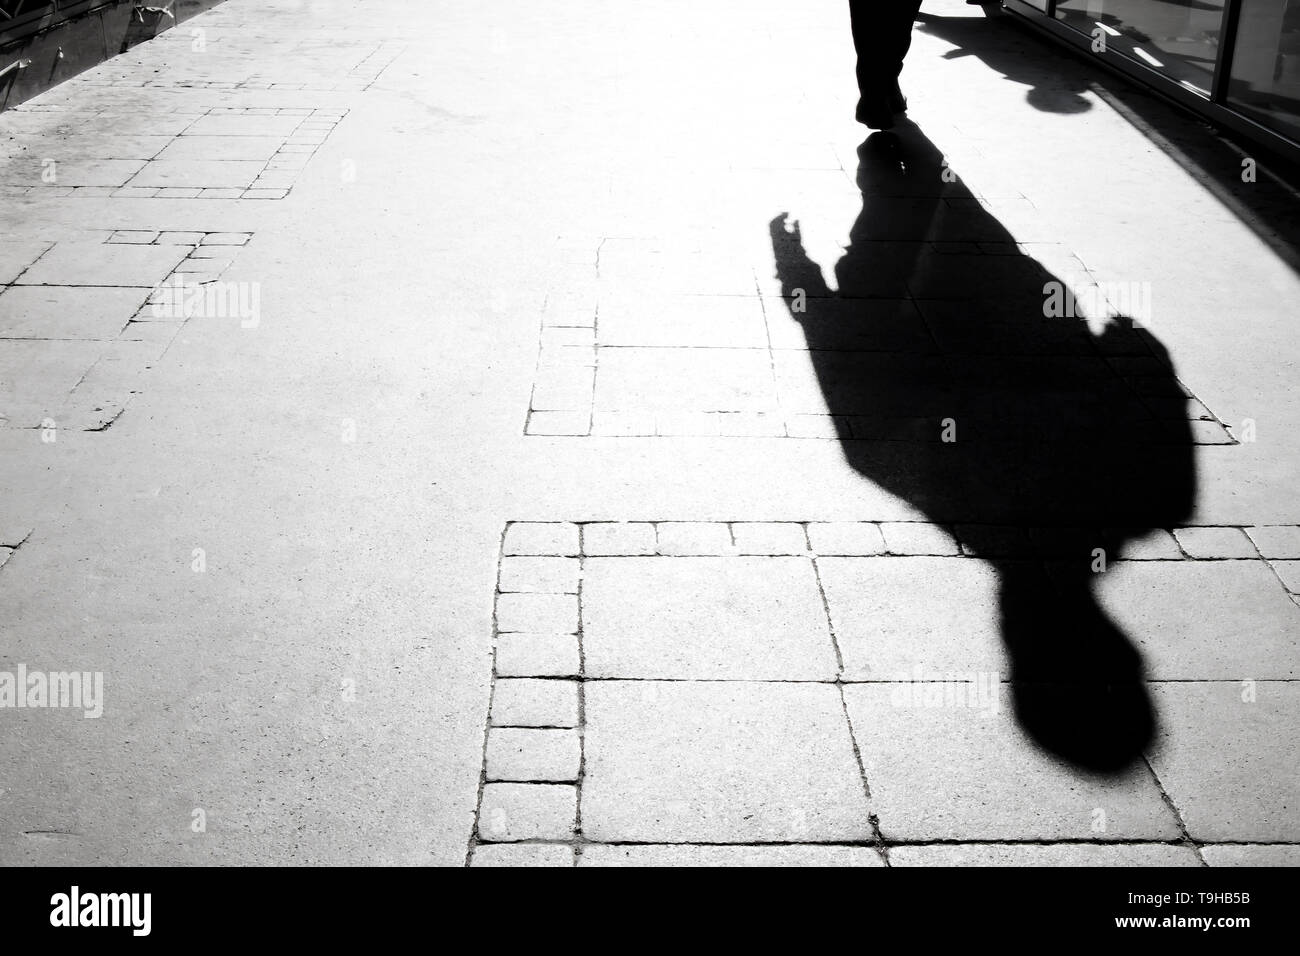 Blurry shadow silhouette of  a person  walking on city sidewalk - Stock Image